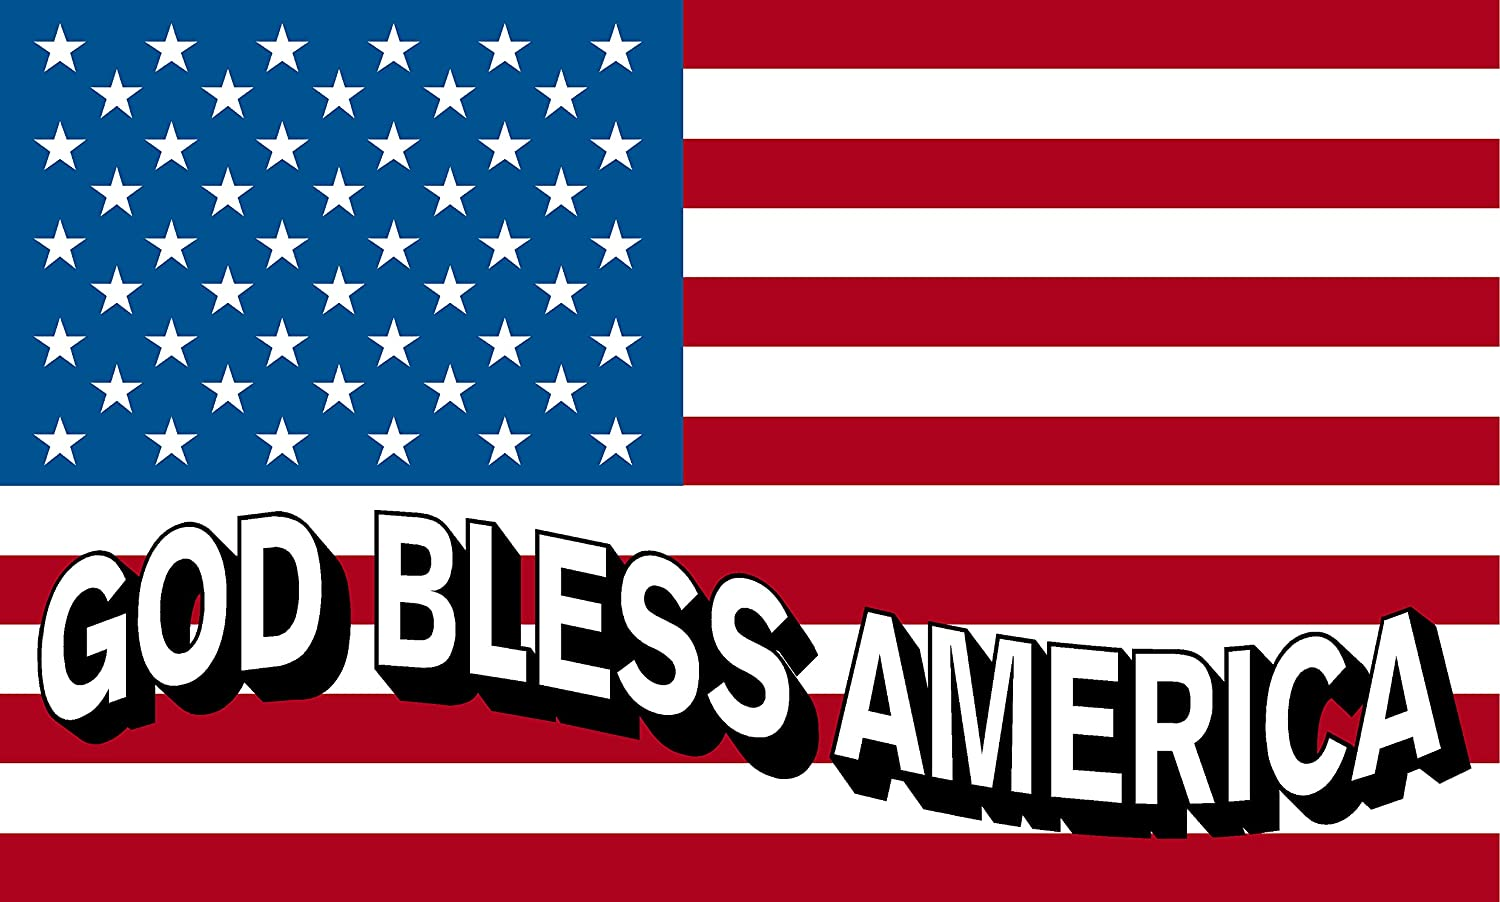 American Flag USA Decal GOD BLESS THE USA 3 PACK PATRIOTIC STICKERS